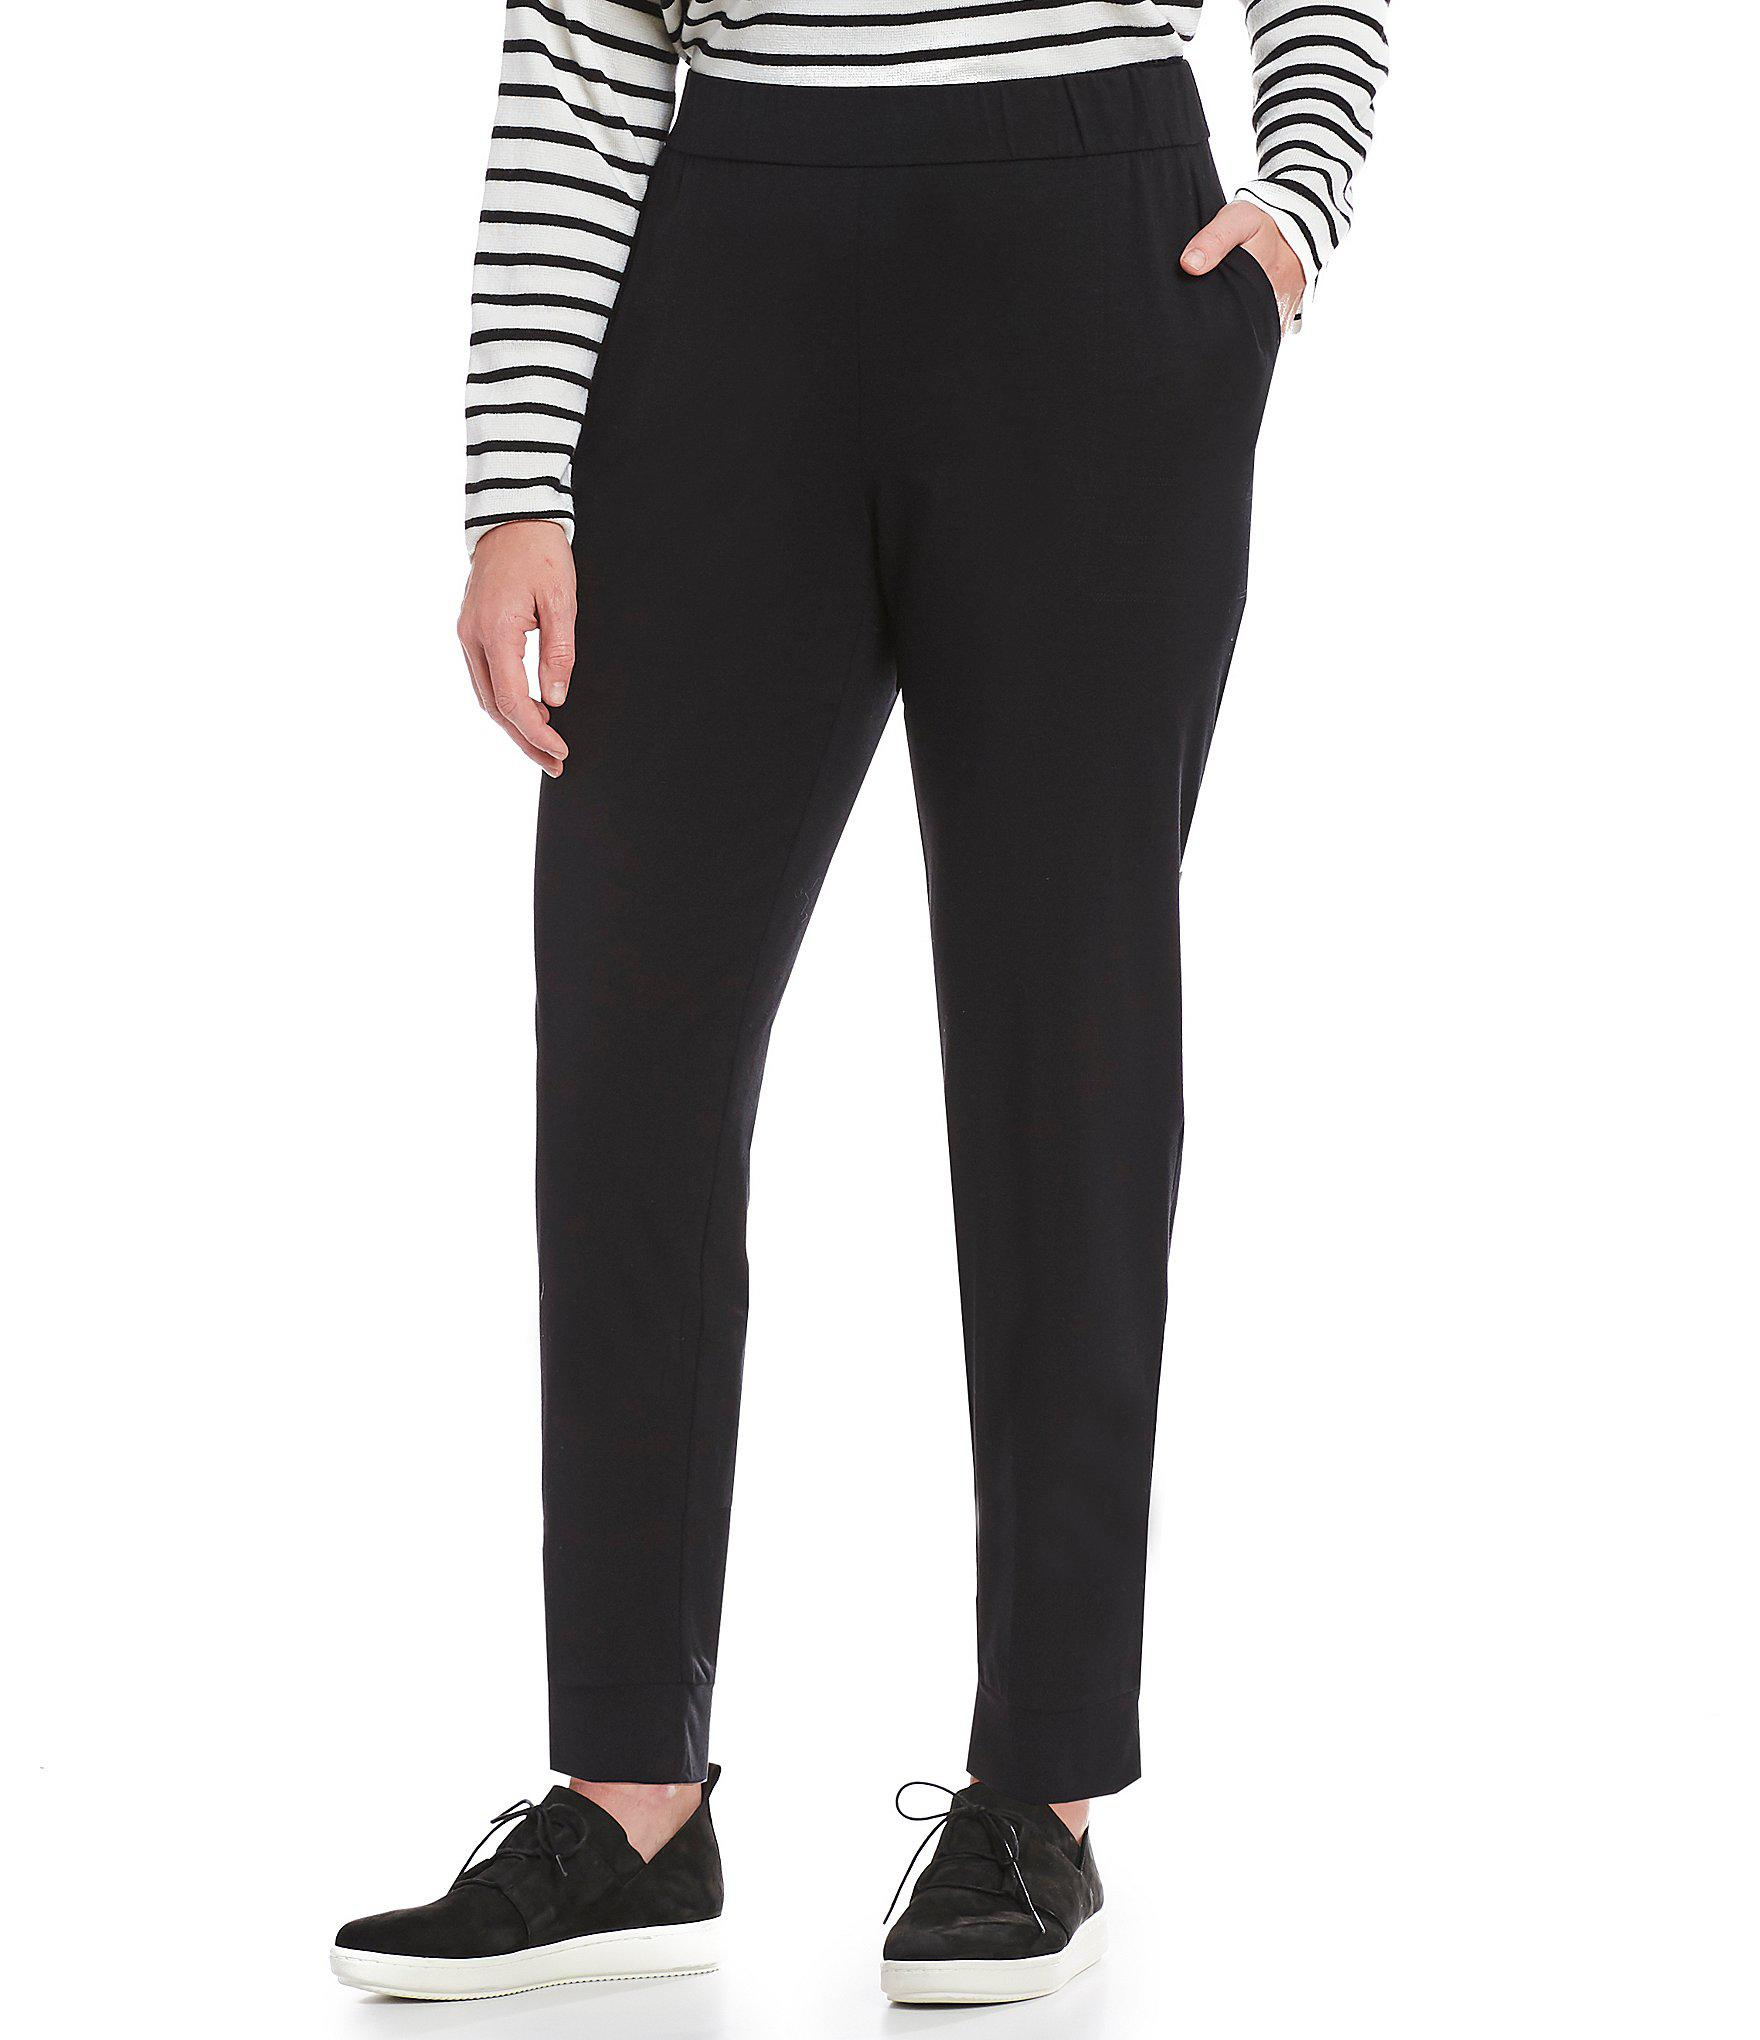 35f0e5eda68 Lyst - Eileen Fisher Plus Size Slouchy Pull-on Pants in Black